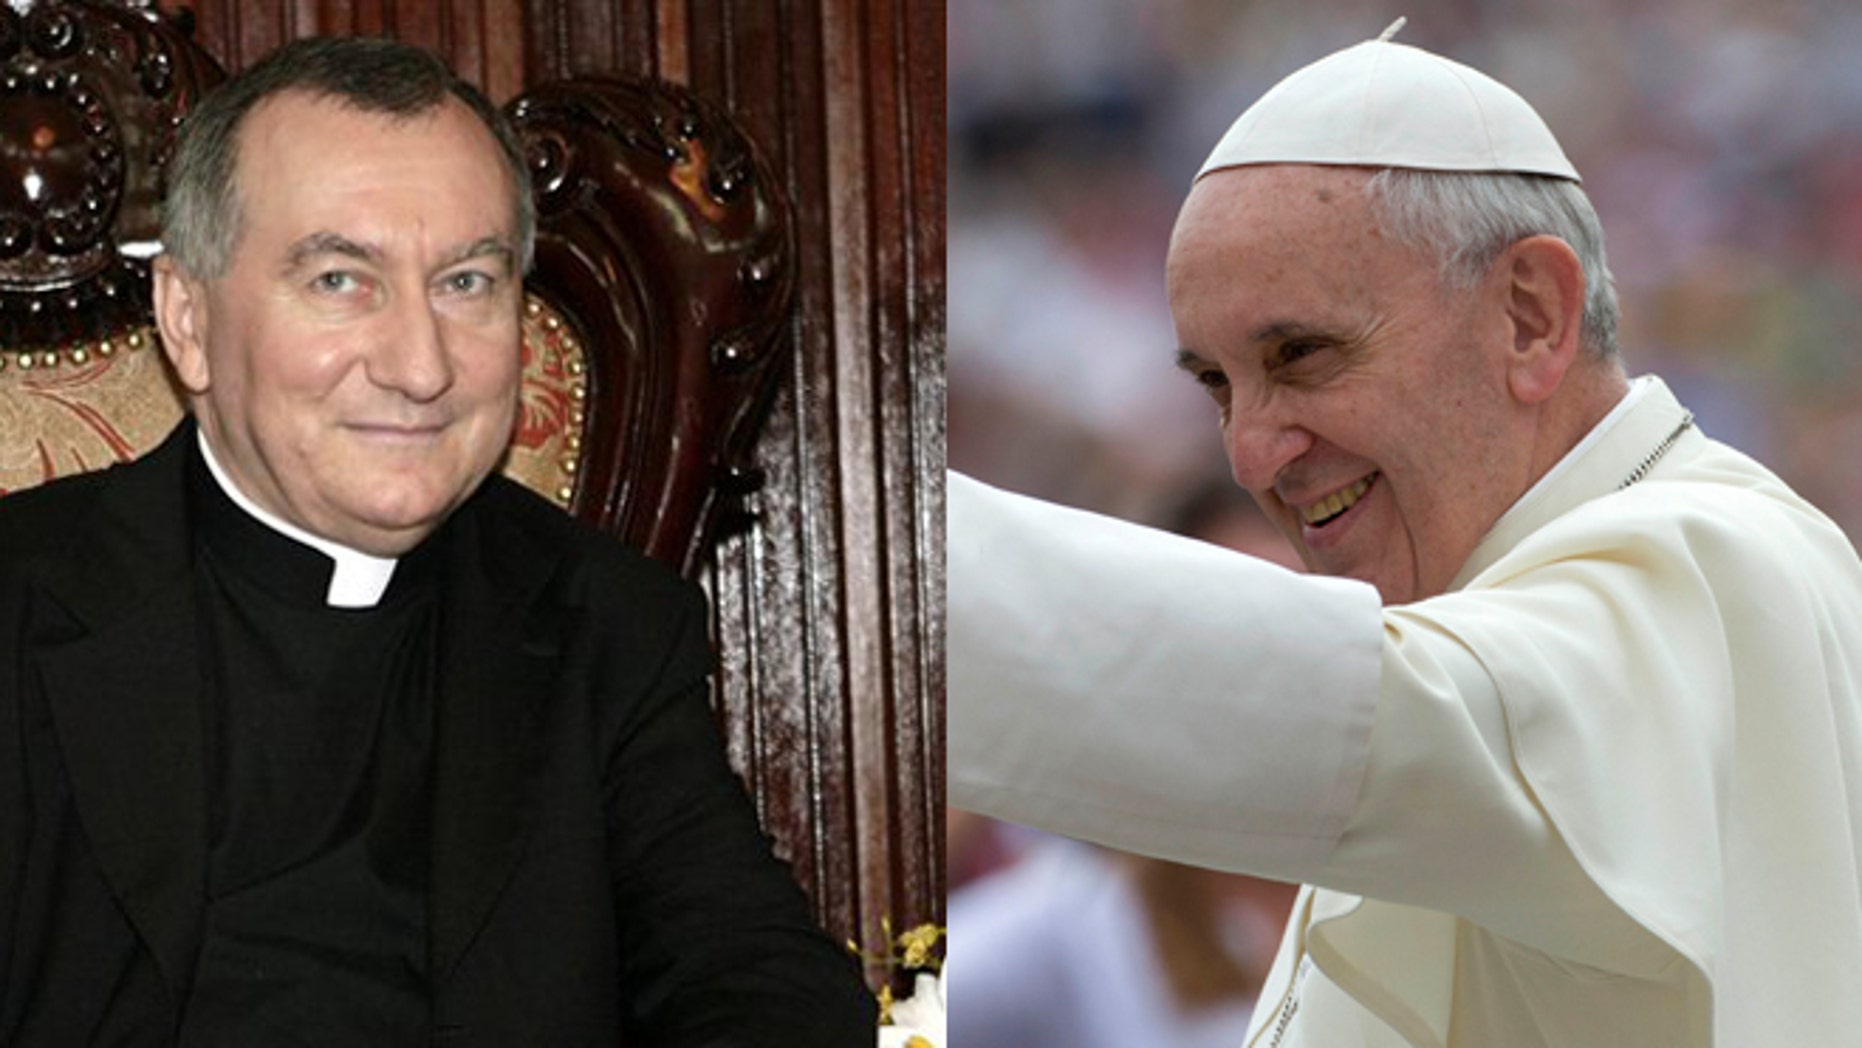 Vatican's Secretary of State Pietro Parolin (left) and Pope Francis (right).